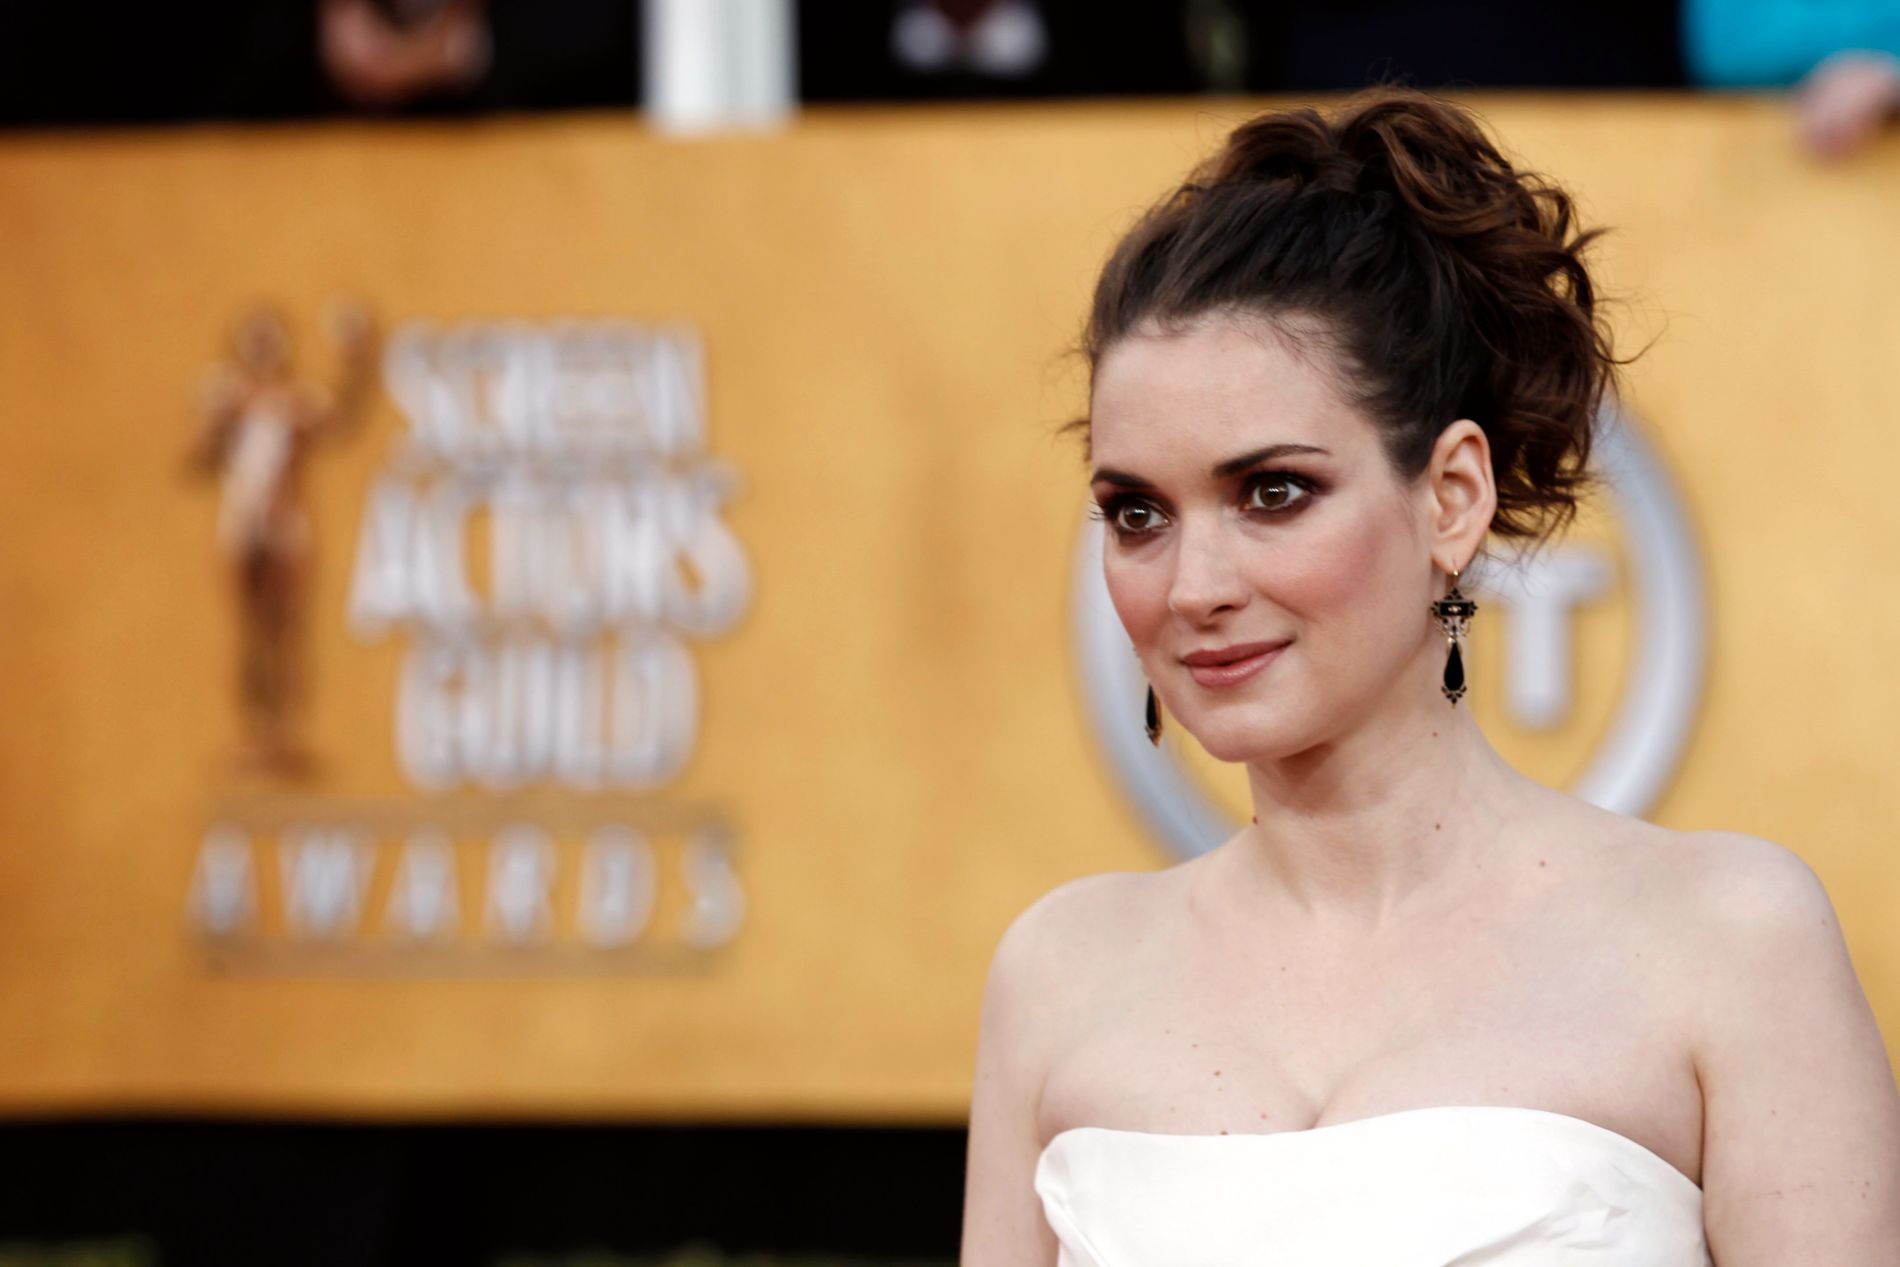 BLITT VOKSEN: Winona Ryder ankommer Screen Actors Guild Awards i Los Angeles i 2011. Foto: AP/Matt Sayles)